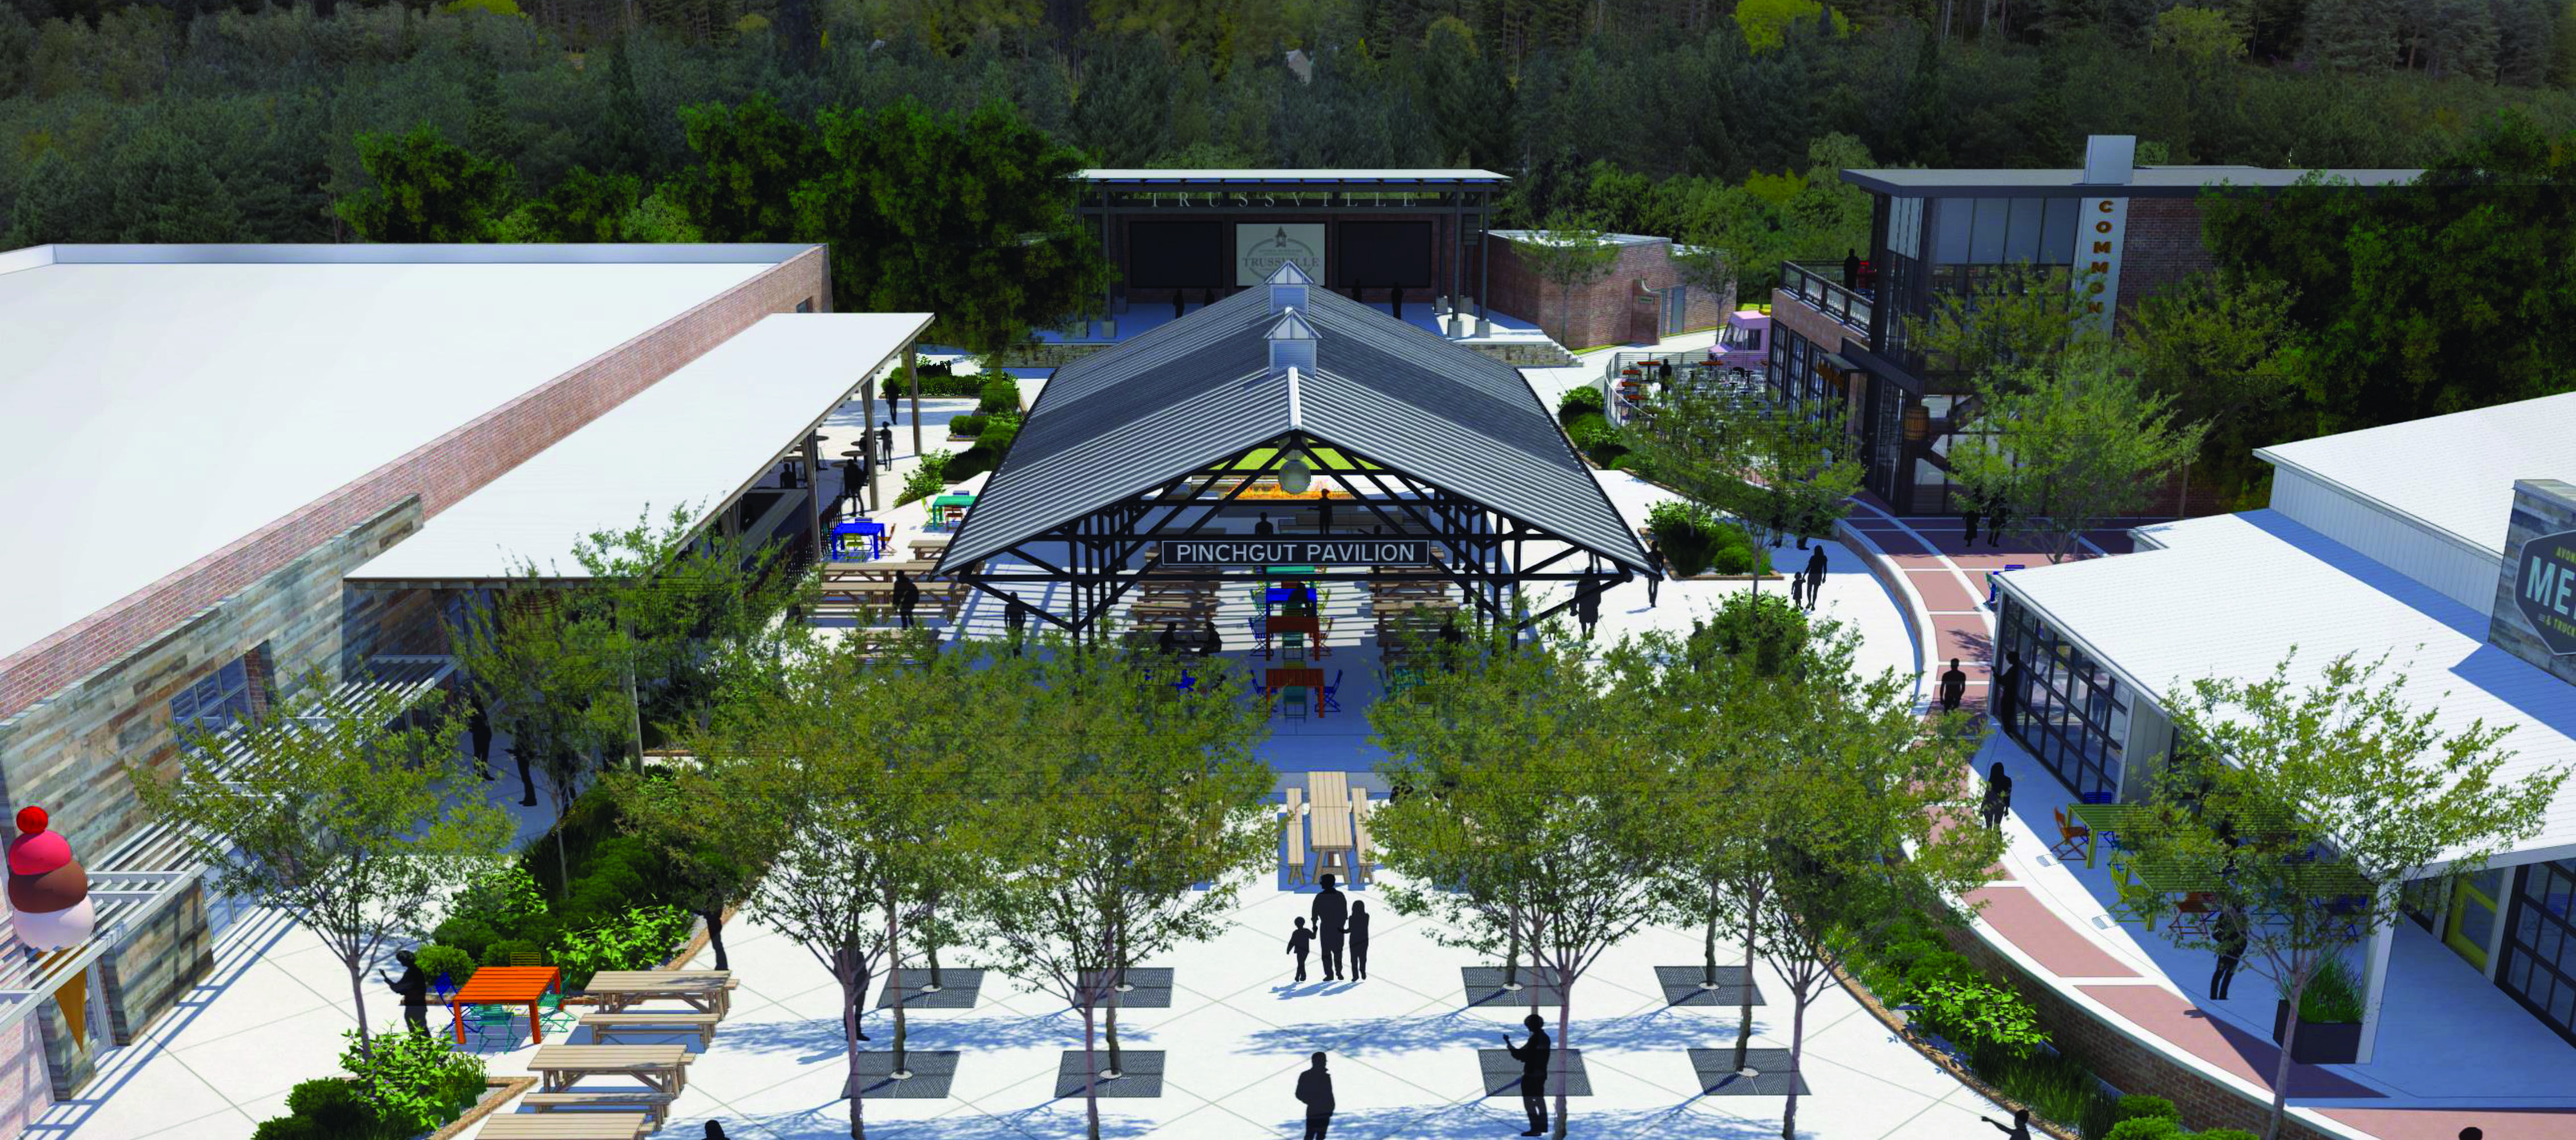 Trussville council vacates portion of Morrow Ave for amphitheater, pavilion in entertainment district